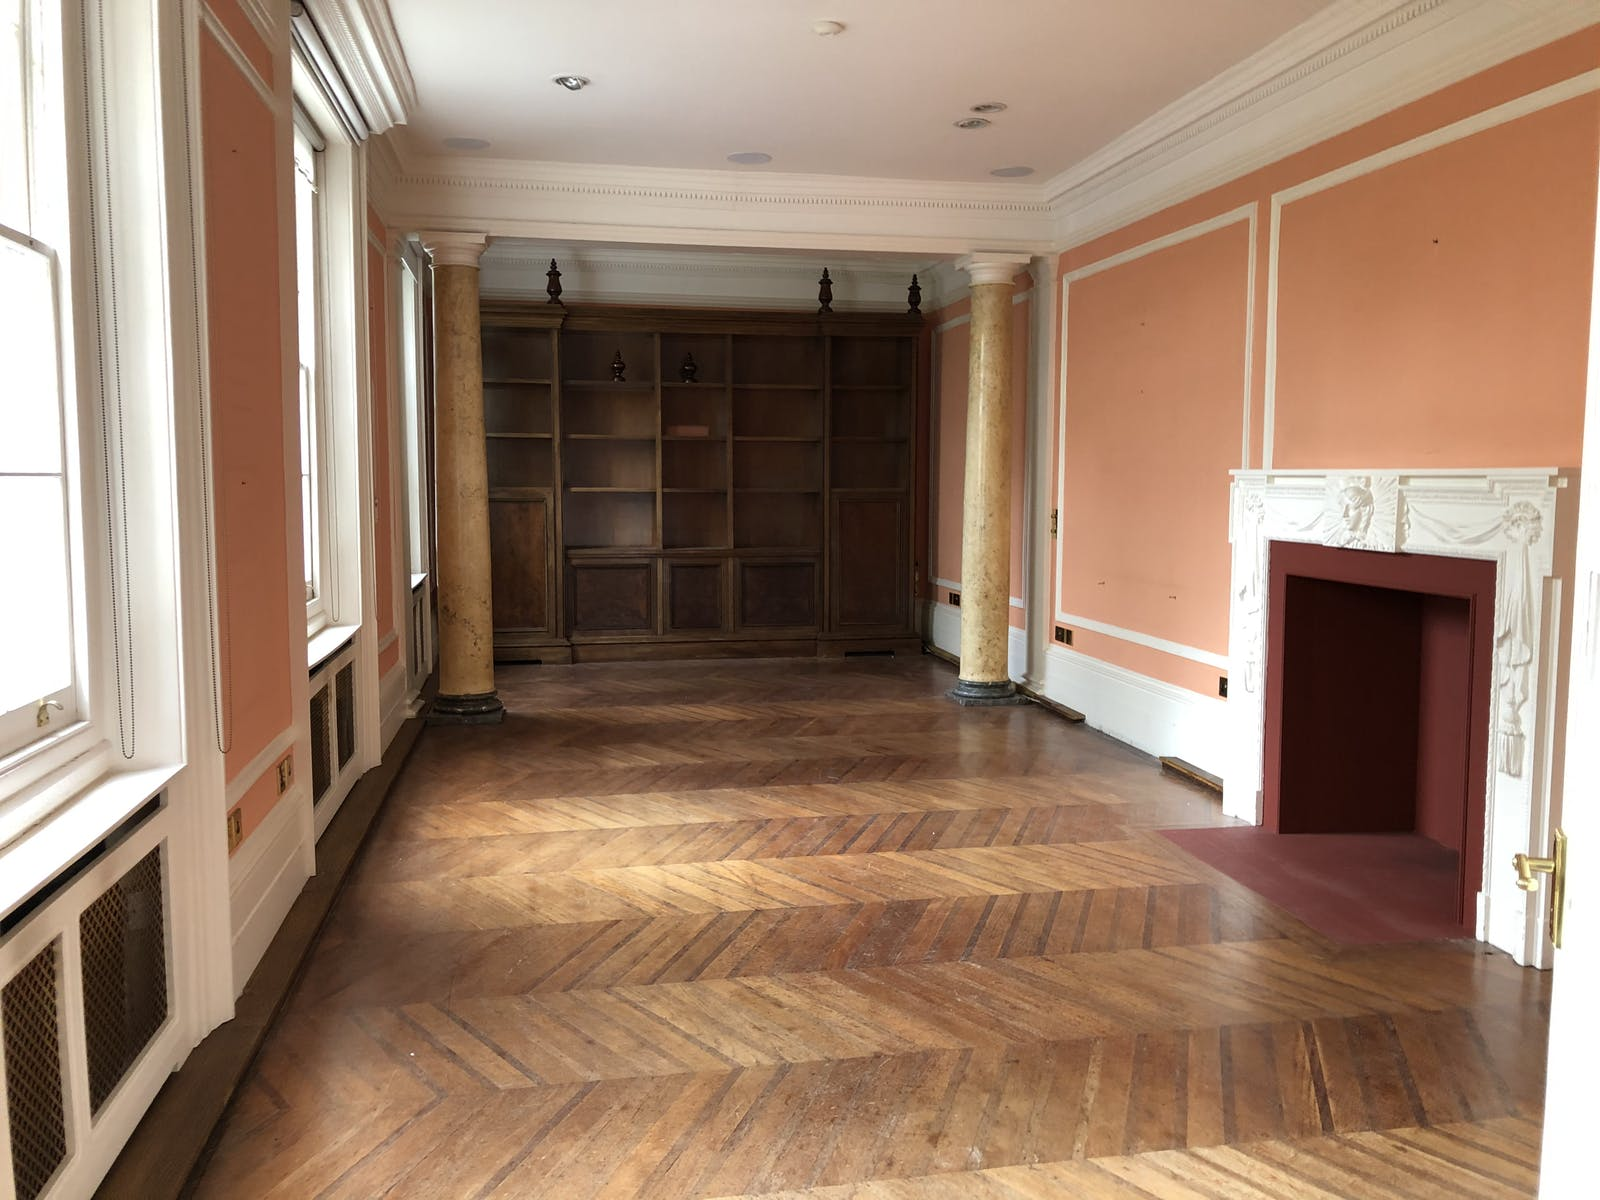 19 West Eaton Place, Belgravia, London, Office To Let - image007.jpg